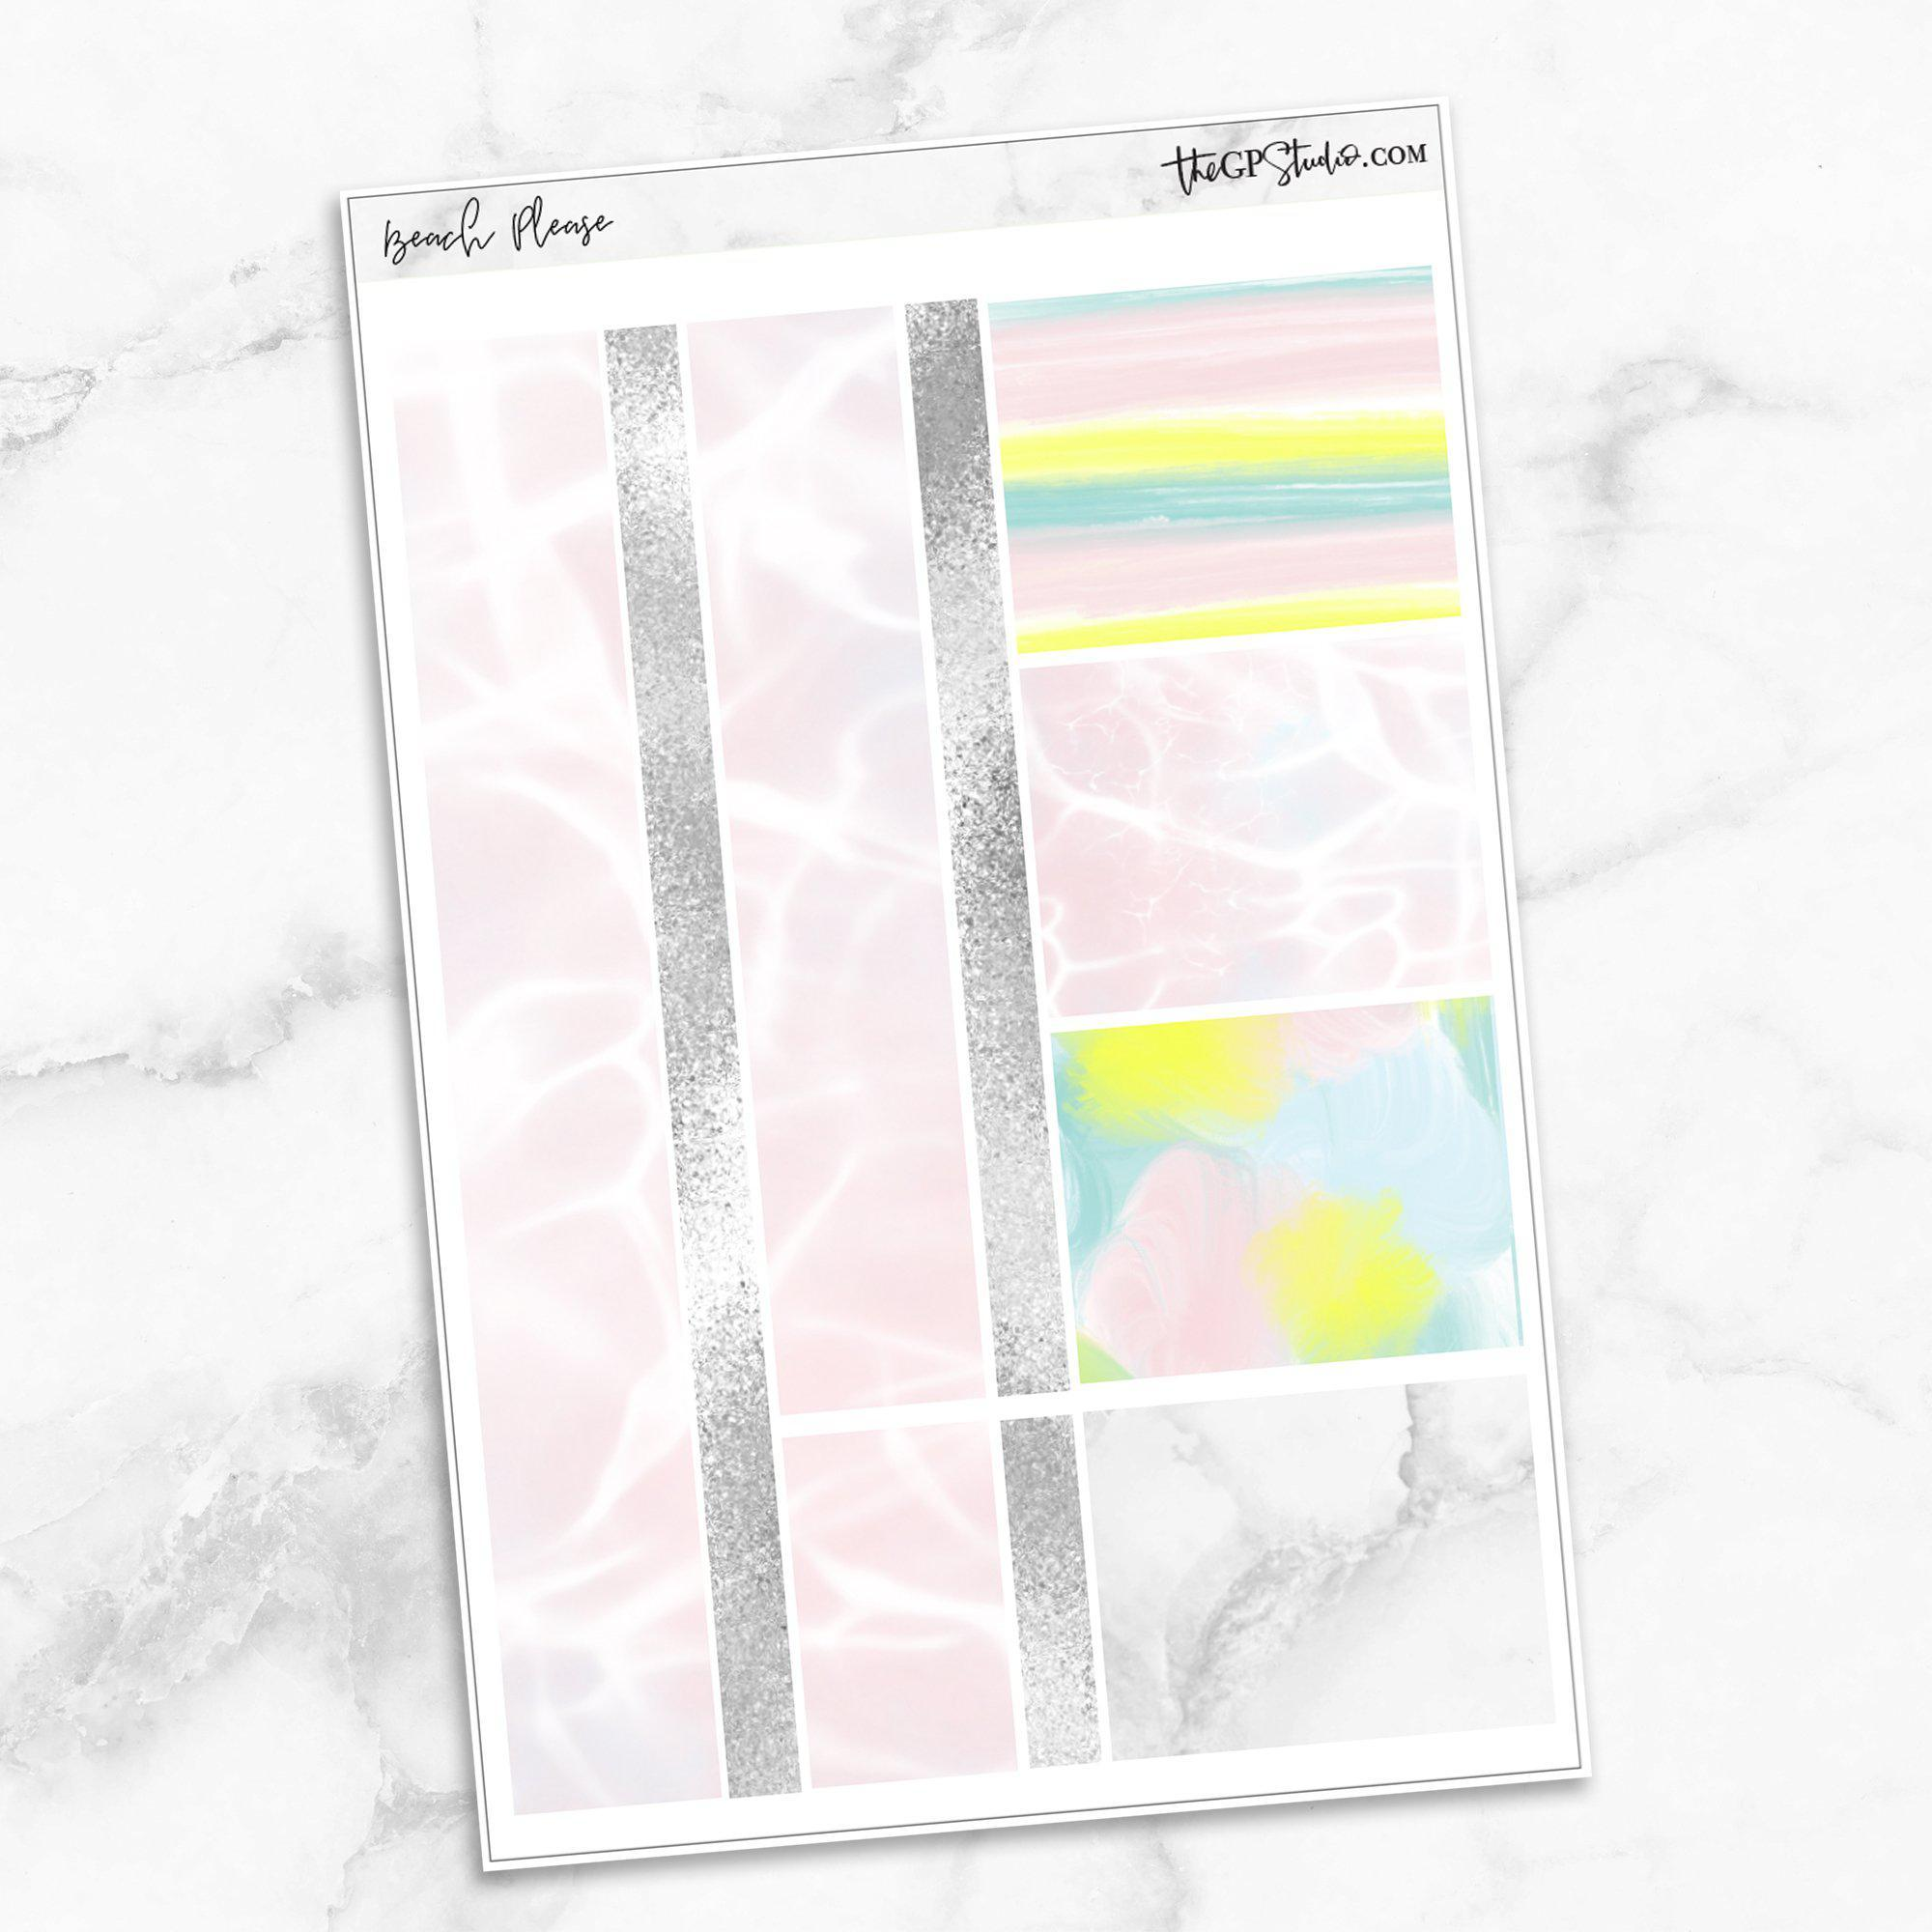 BEACH PLEASE Washi Sheet Stickers-The GP Studio